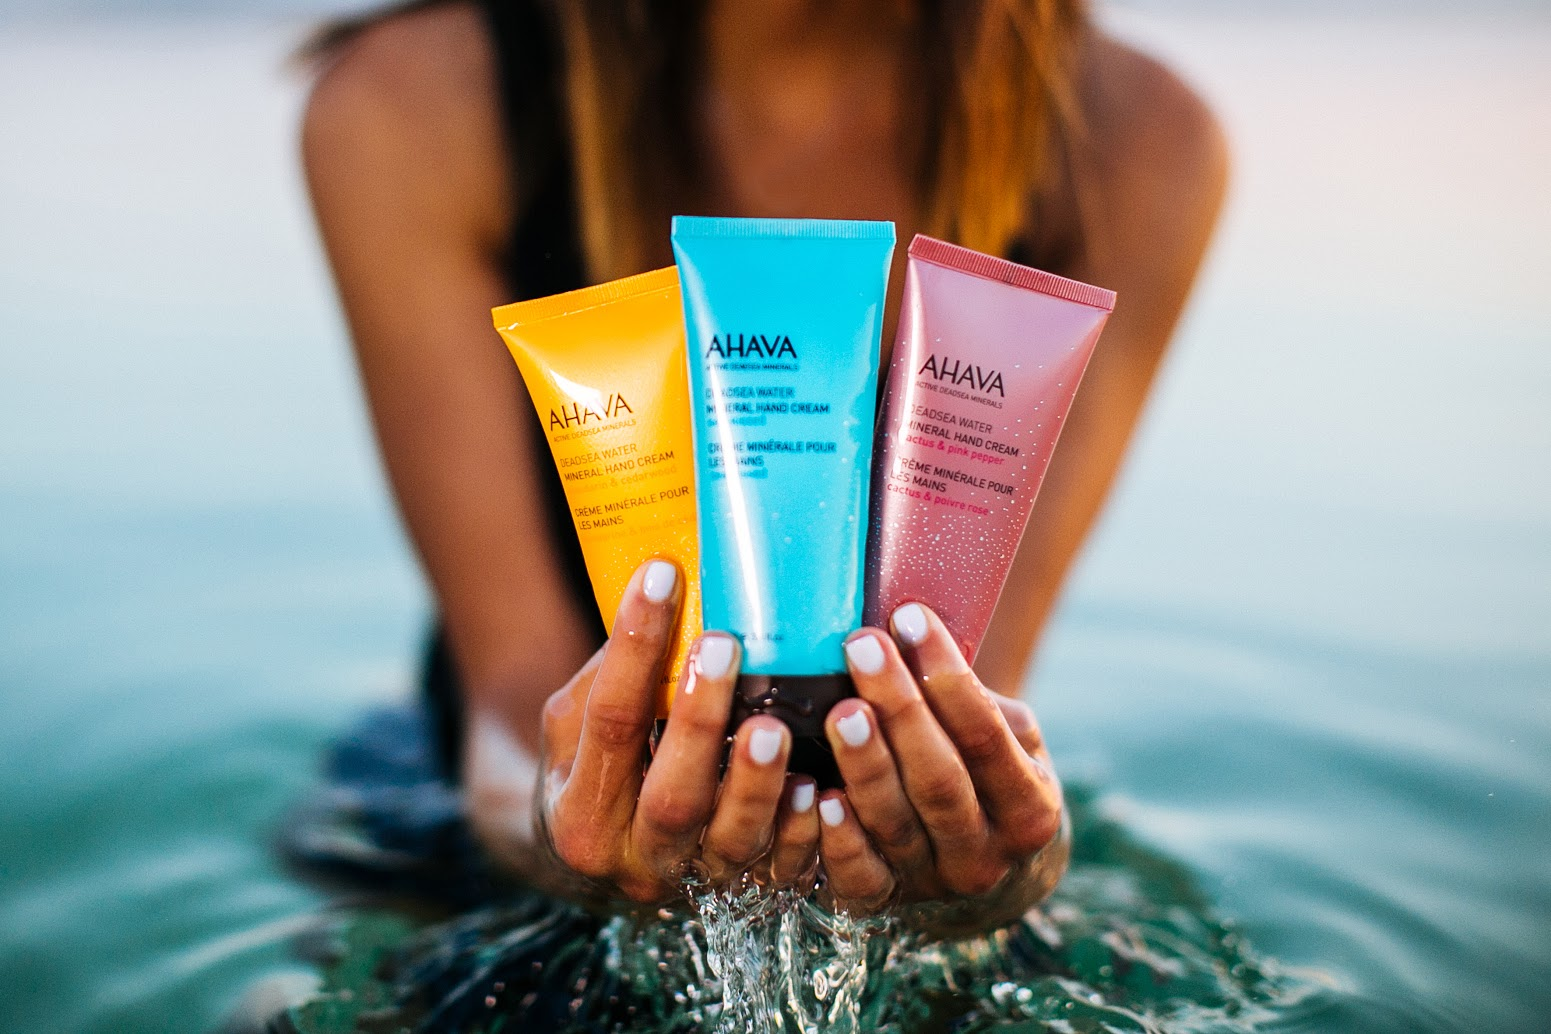 ahaha dead sea hand cream